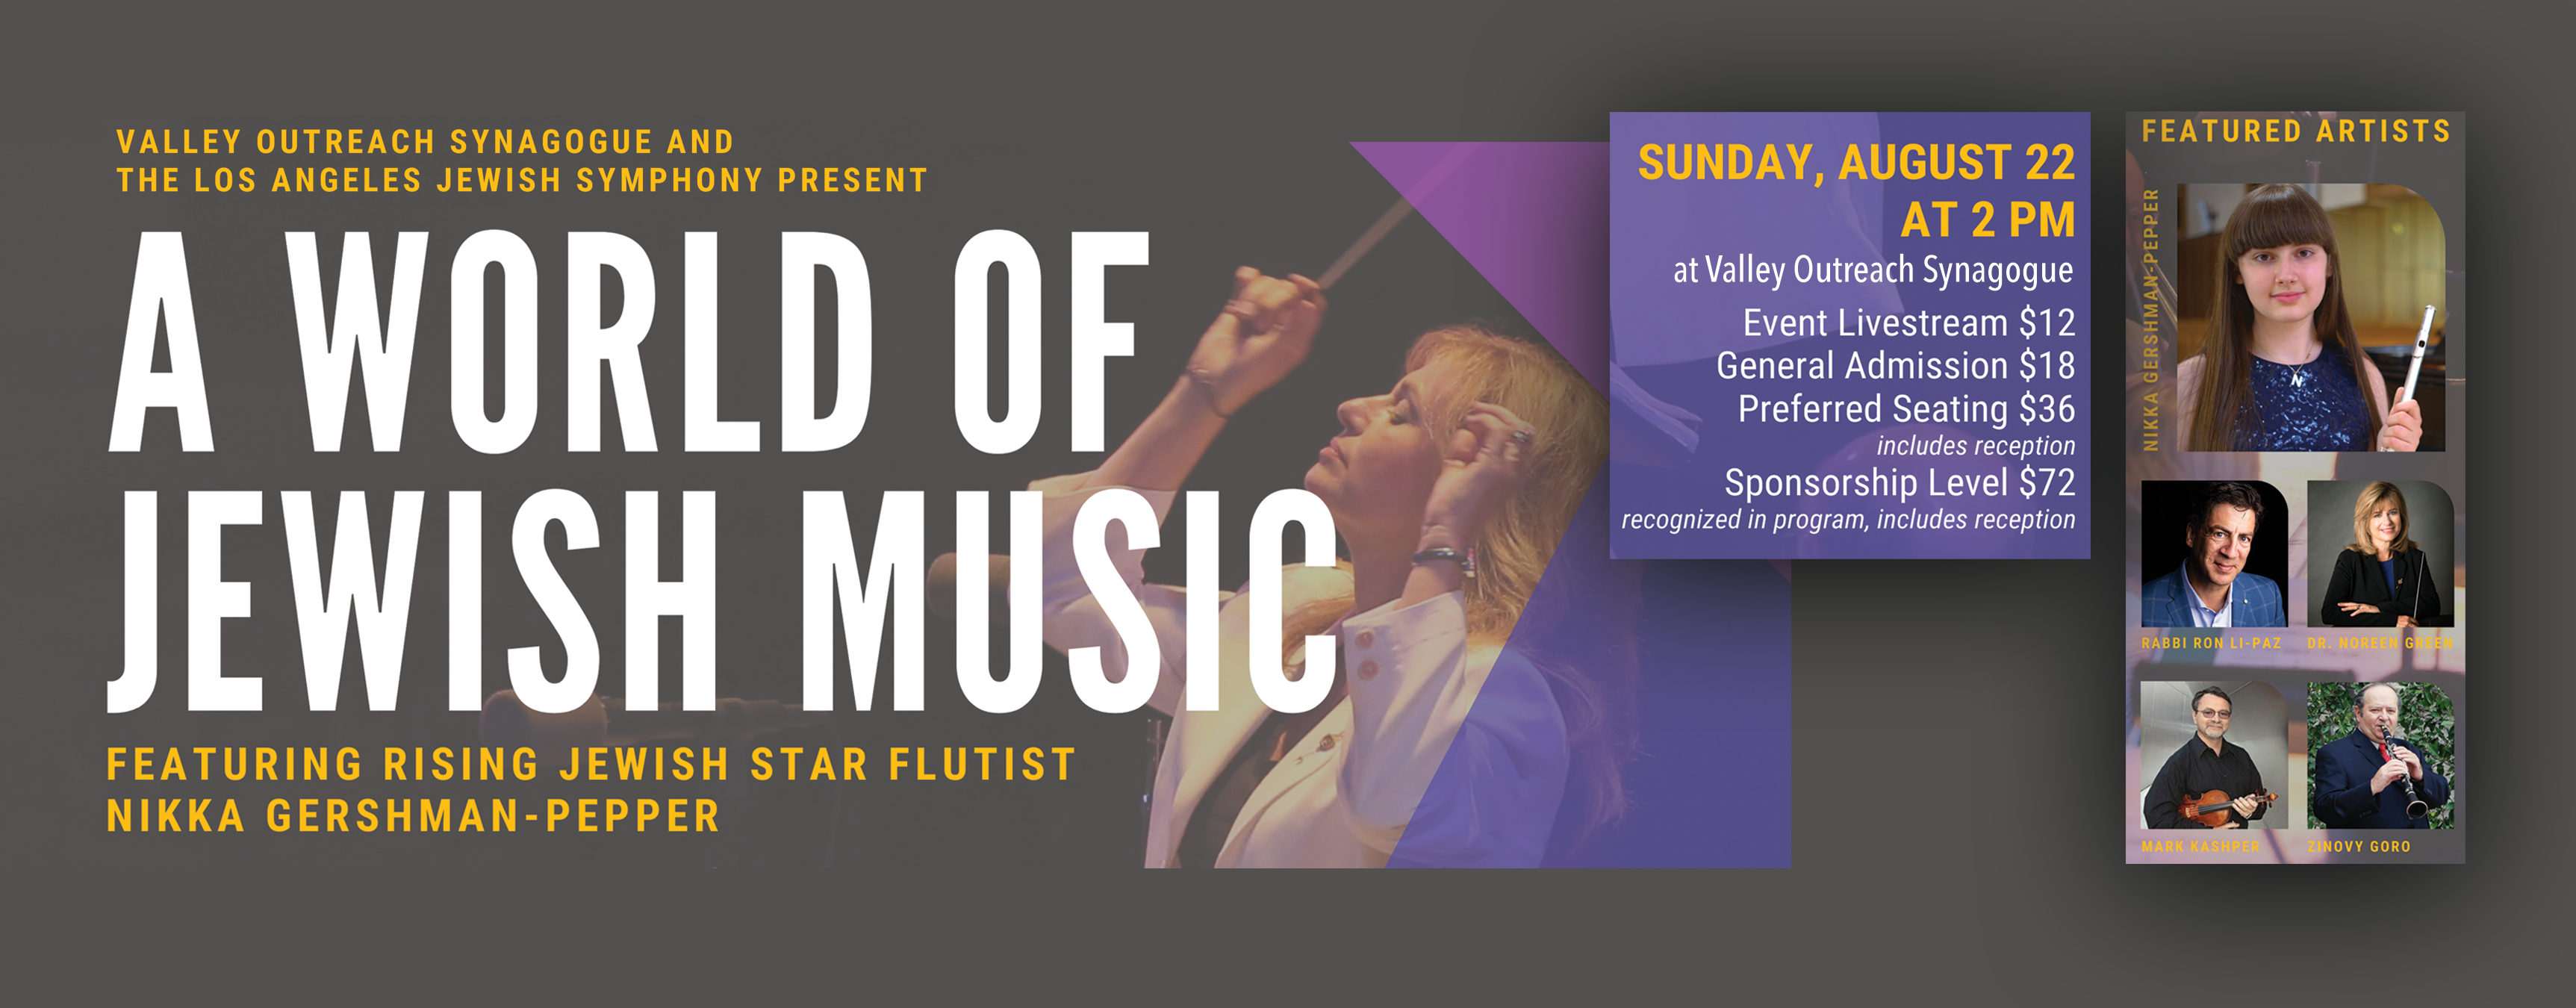 """<a href=""""https://www.vosla.org/form/Jewish-Music""""                                     target=""""_blank"""">                                                                 <span class=""""slider_title"""">                                     Click Here to Register                                </span>                                                                 </a>"""